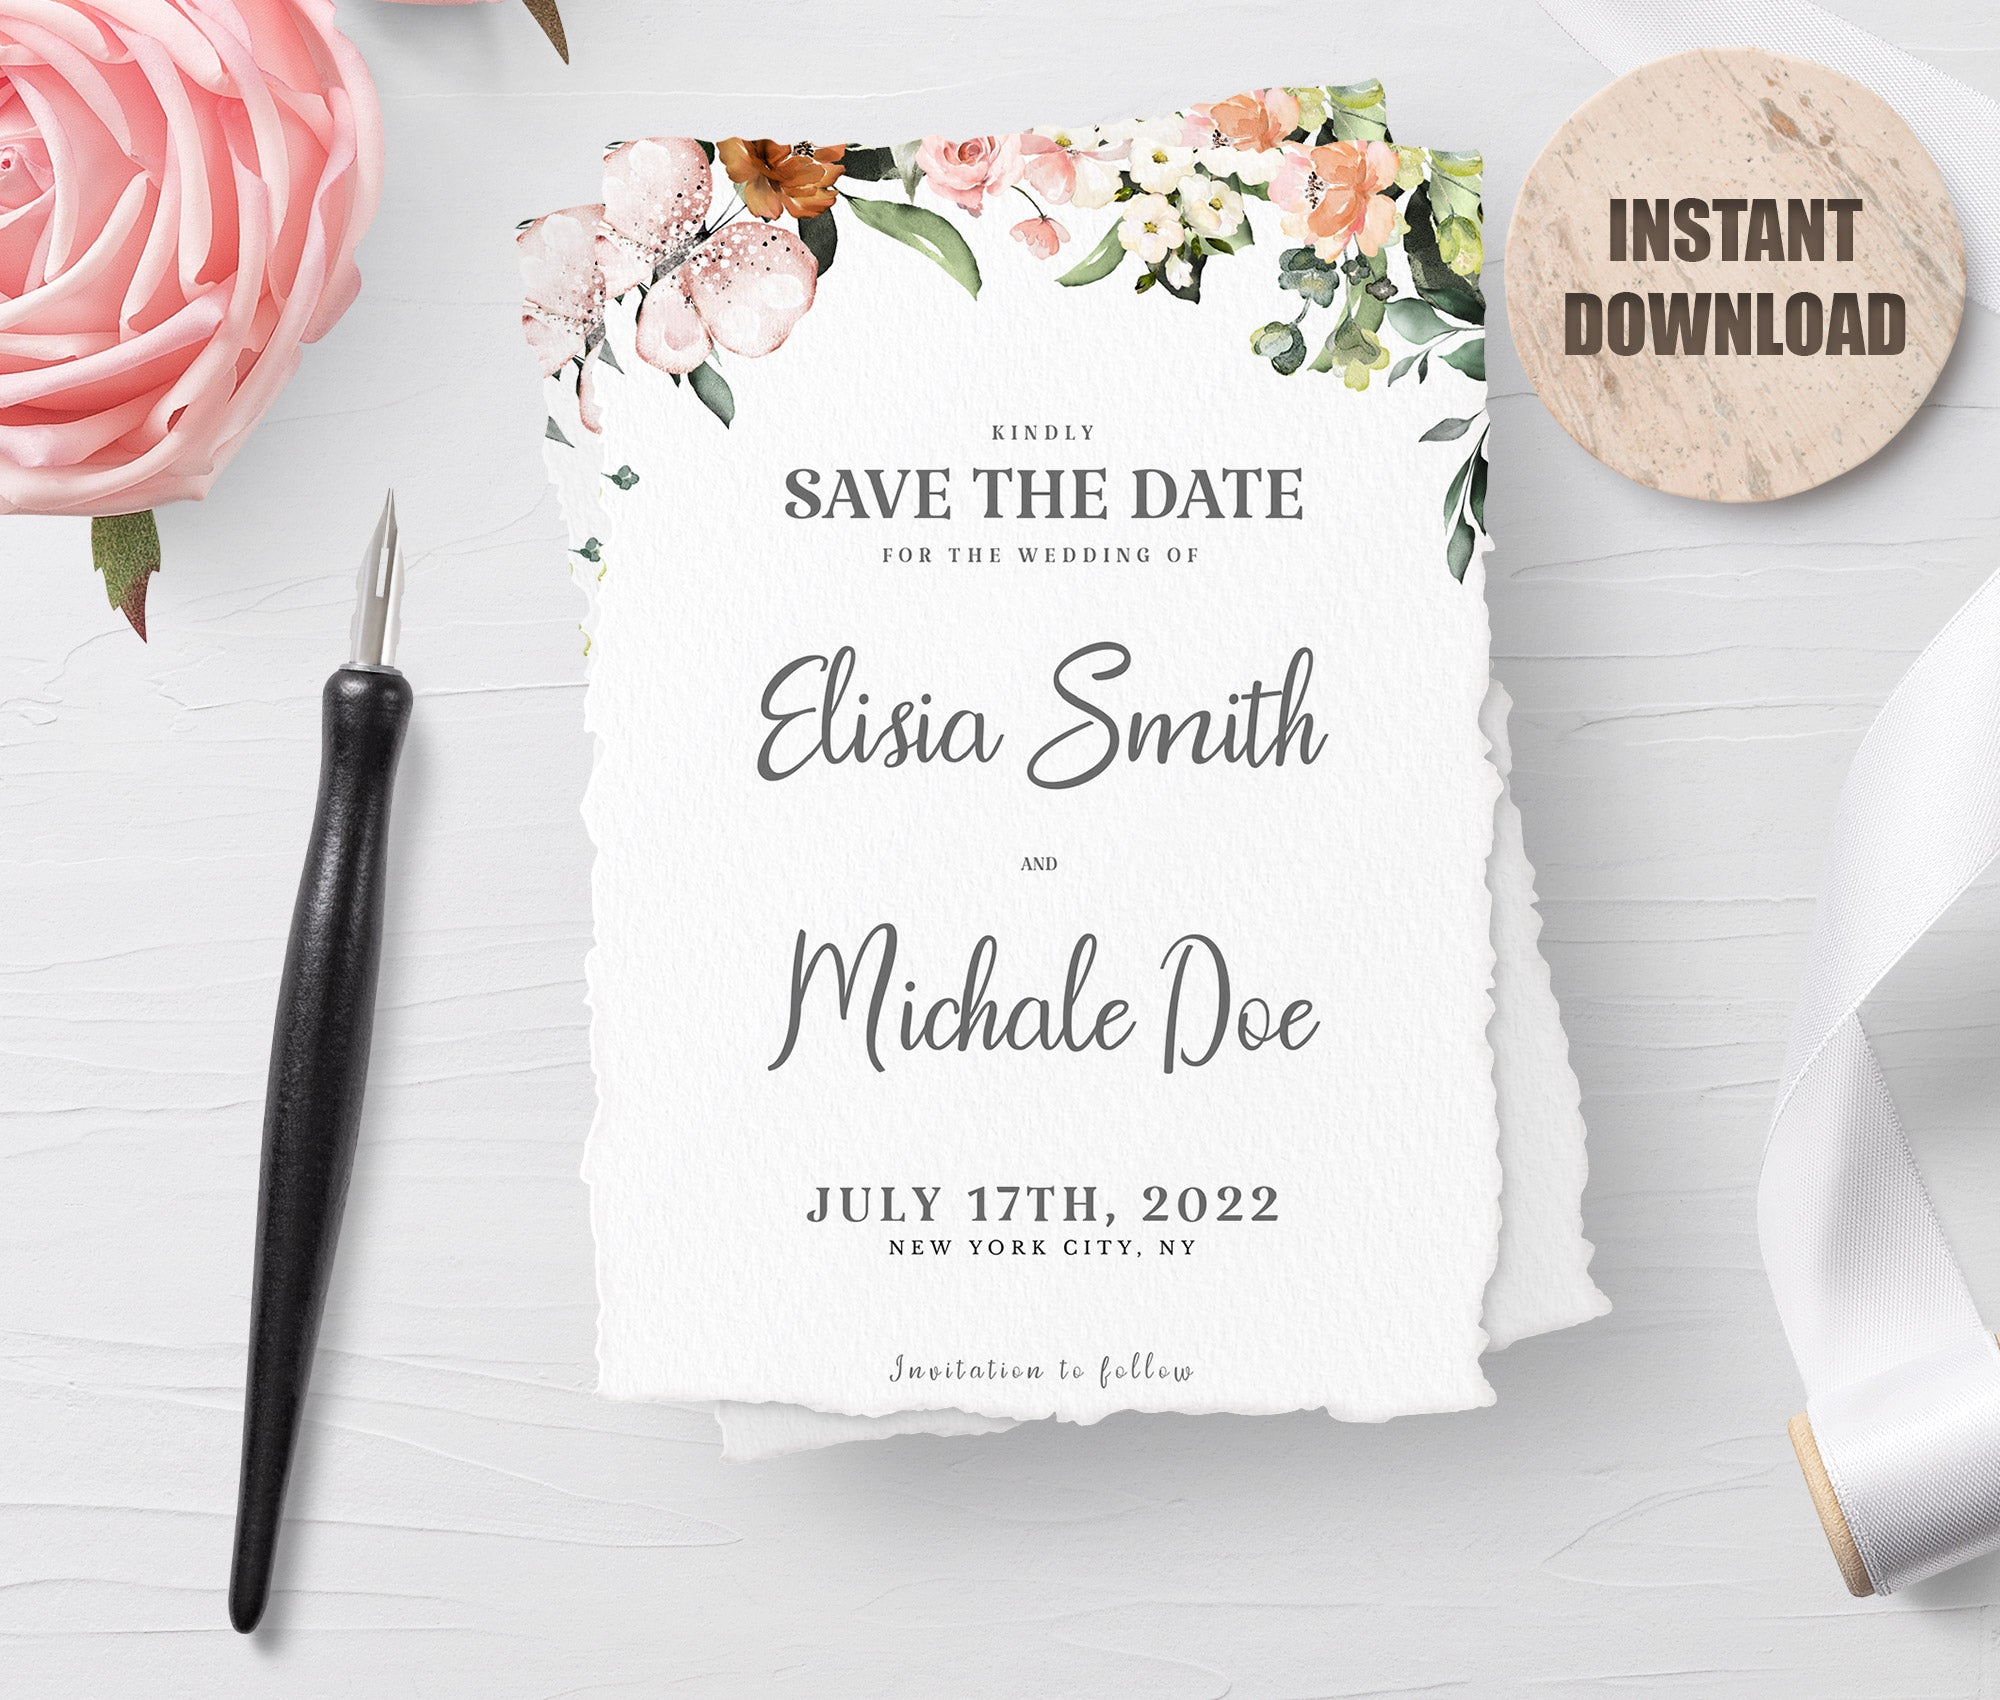 LOVAL Printable Save the Date Card set 3